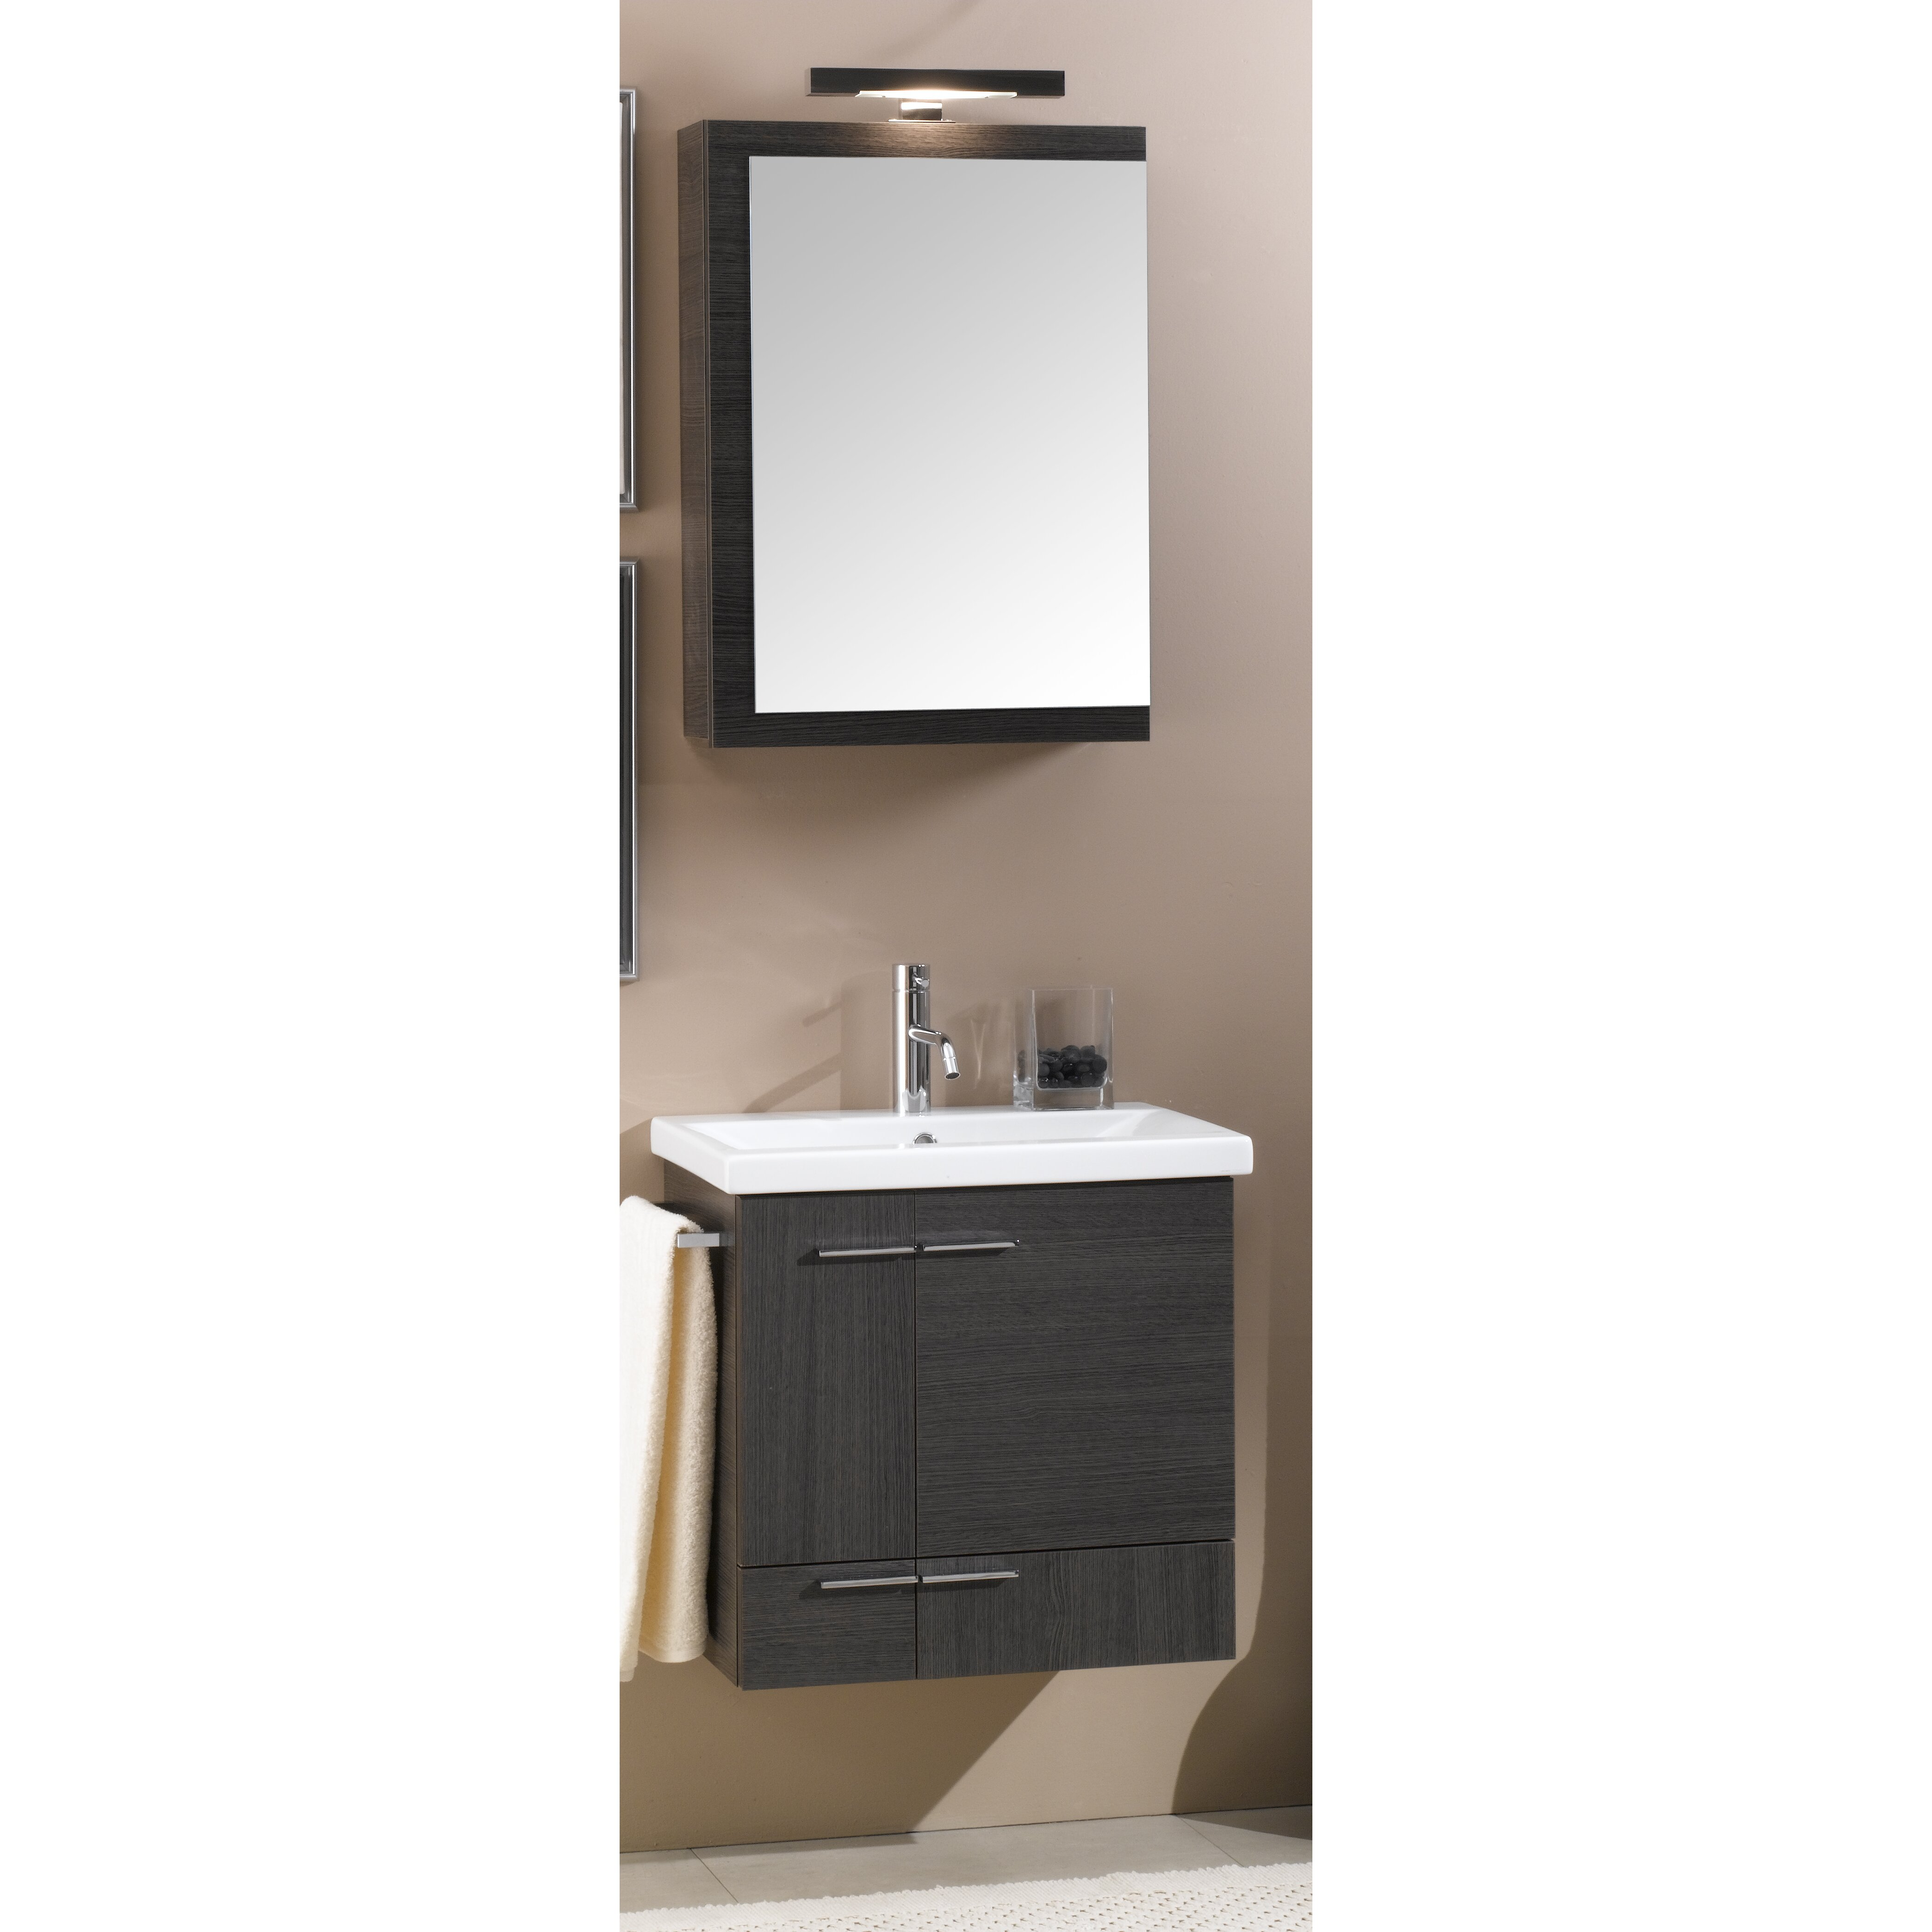 Iotti by nameeks simple 23 quot single wall mounted bathroom vanity set with mirror amp reviews